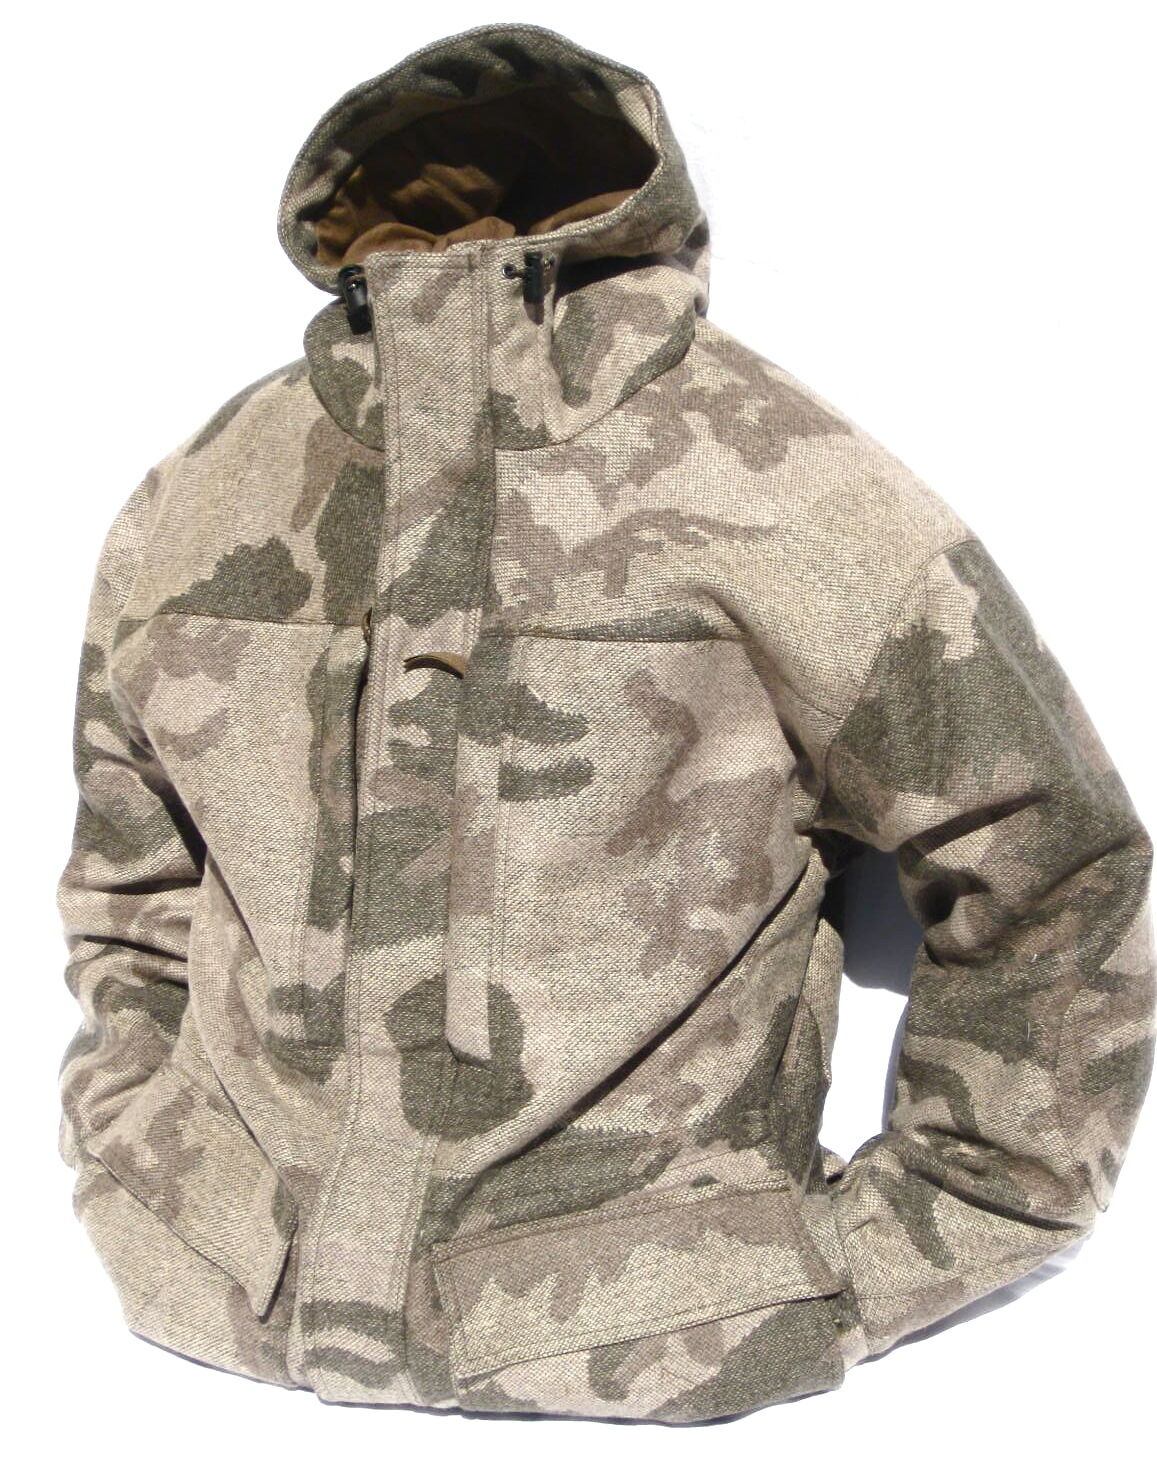 Cabela's Outfitter's Wool Parka Windshear Dry-Plus Hunting Outfitter Camo-Brown